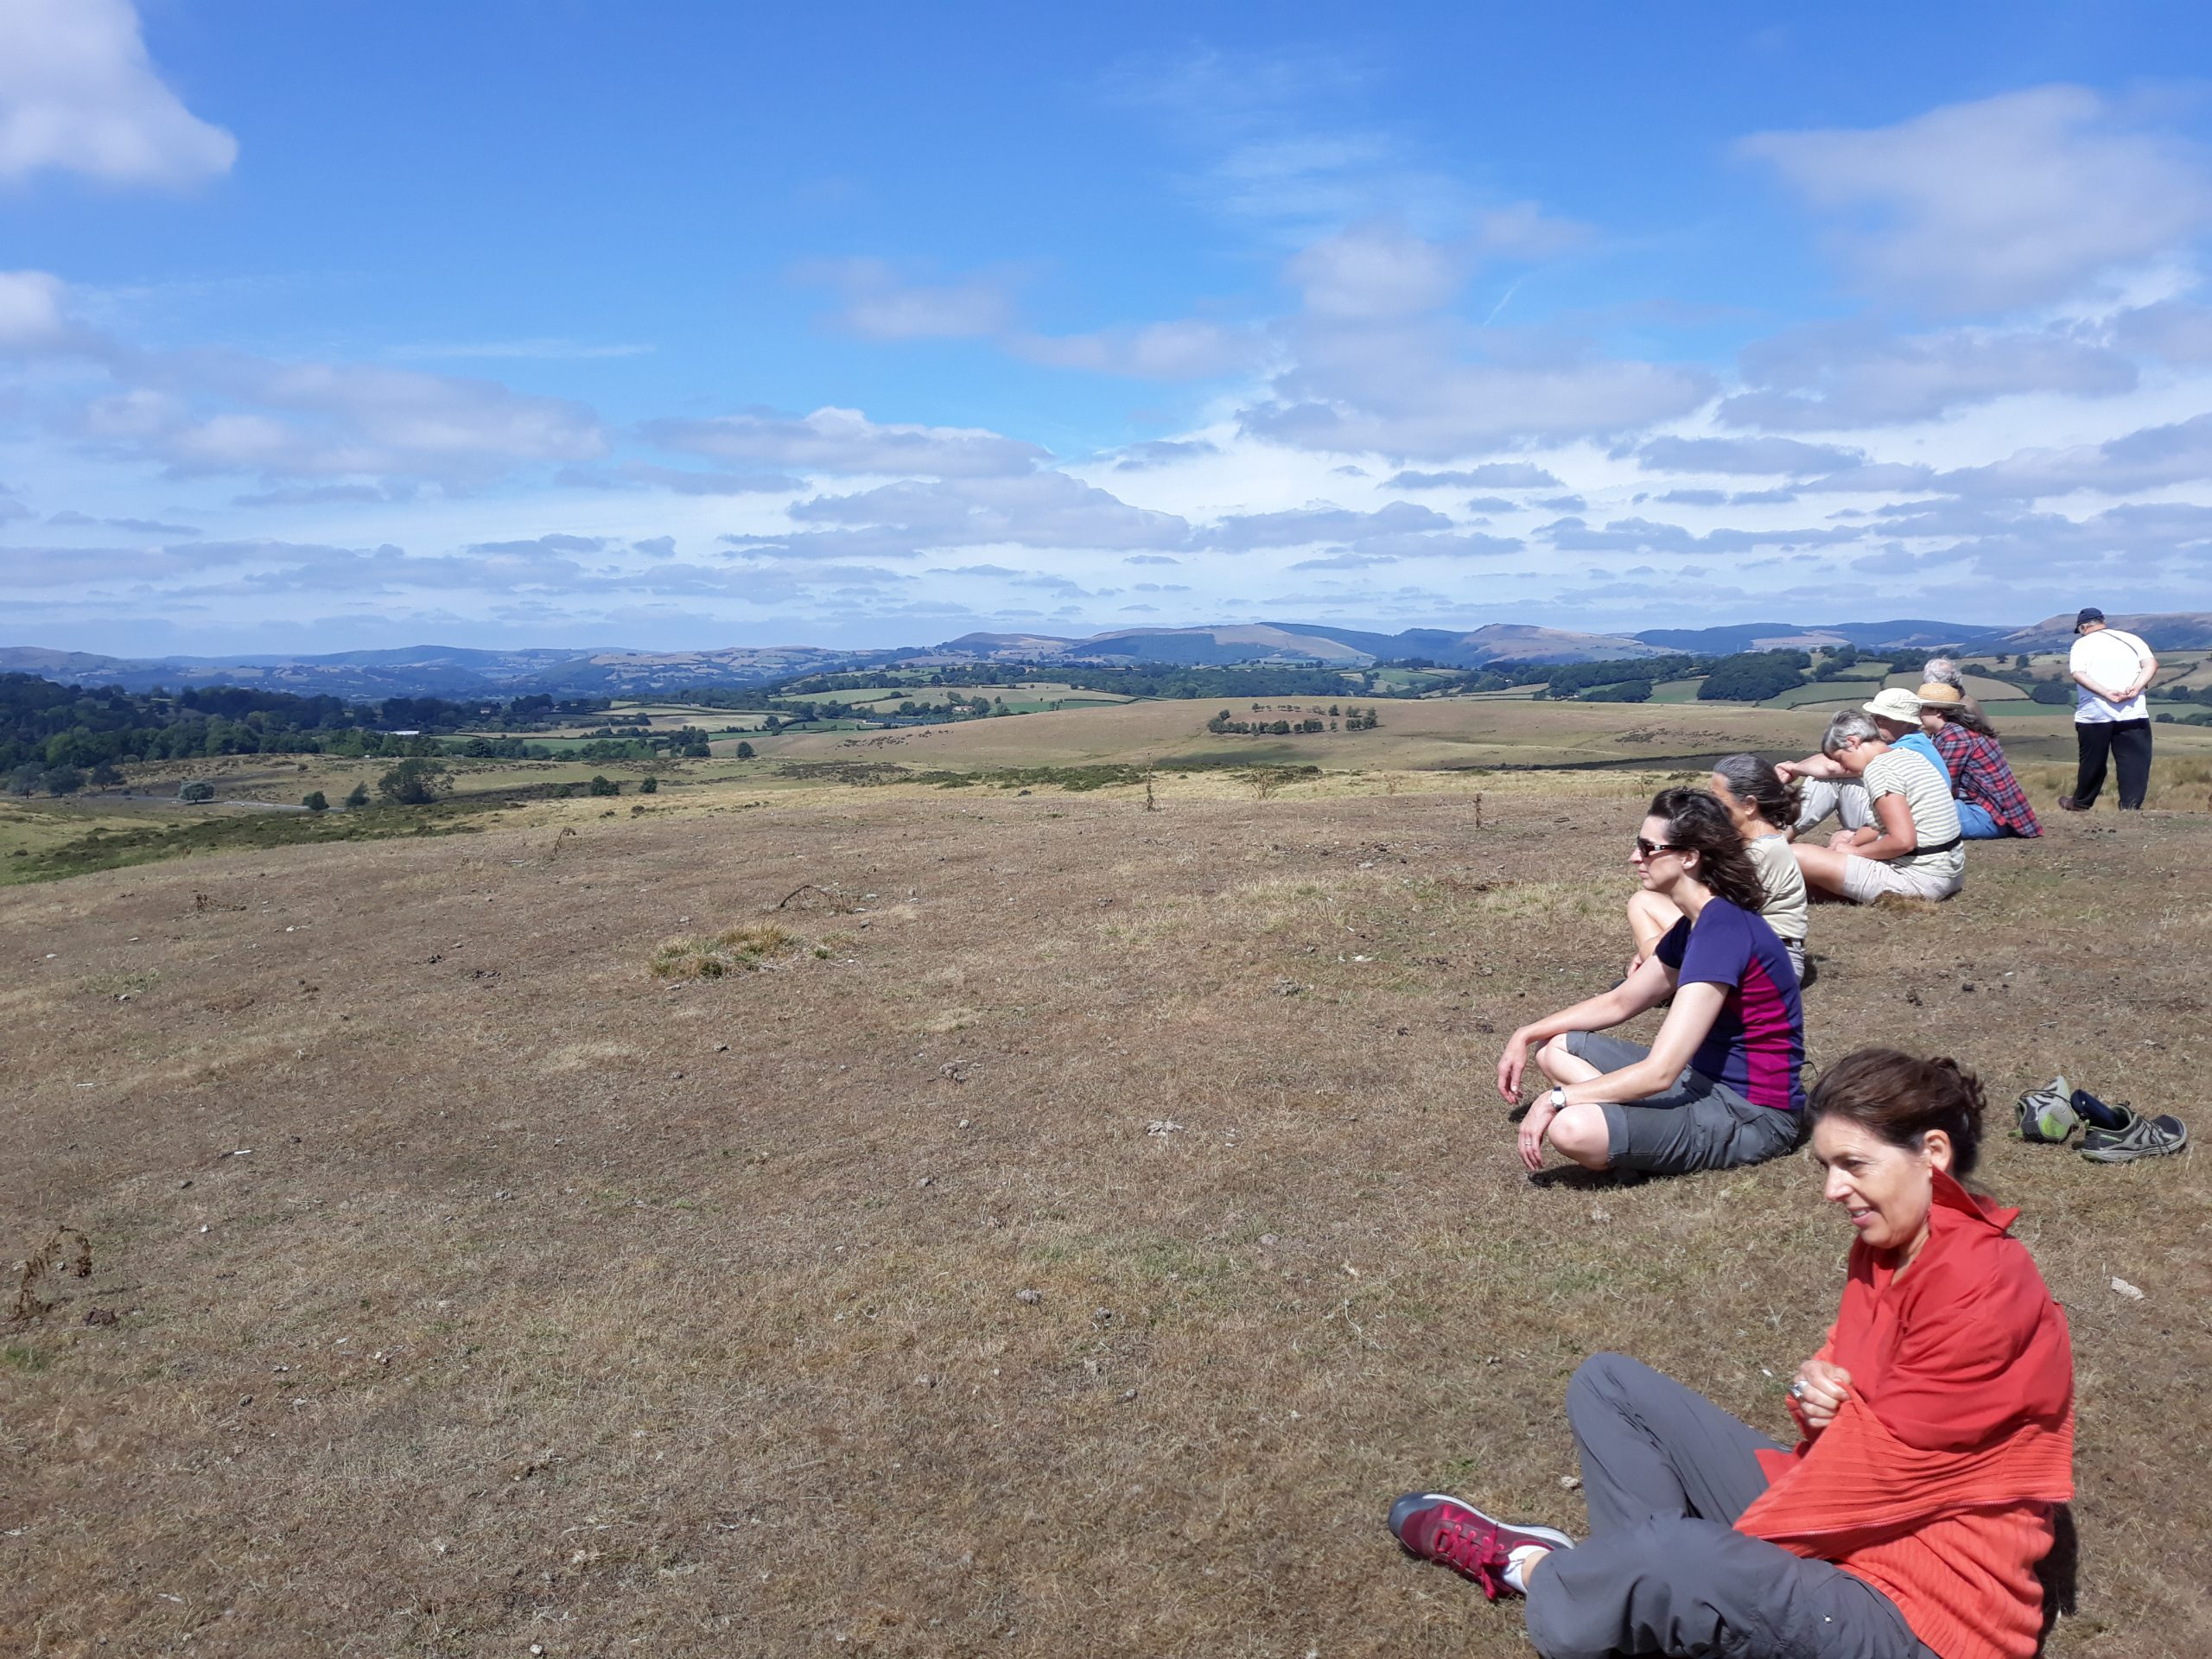 A row of seven people sitting and one standing, looking out over a large field under blue sky and with hills and valleys in the background